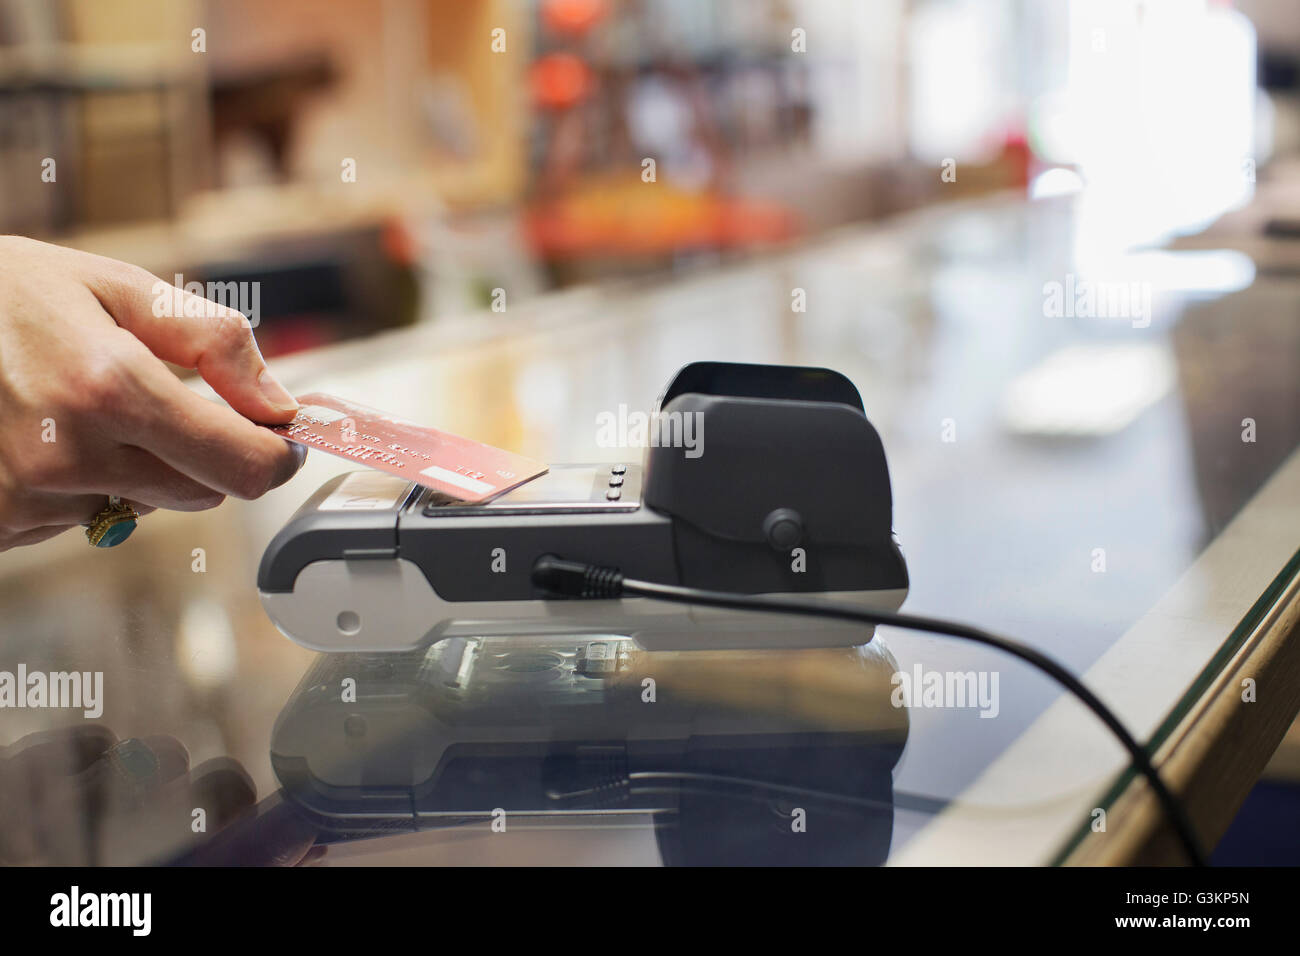 Cropped view of womens hand using credit card to make contactless payment on chip and pin machine Stock Photo